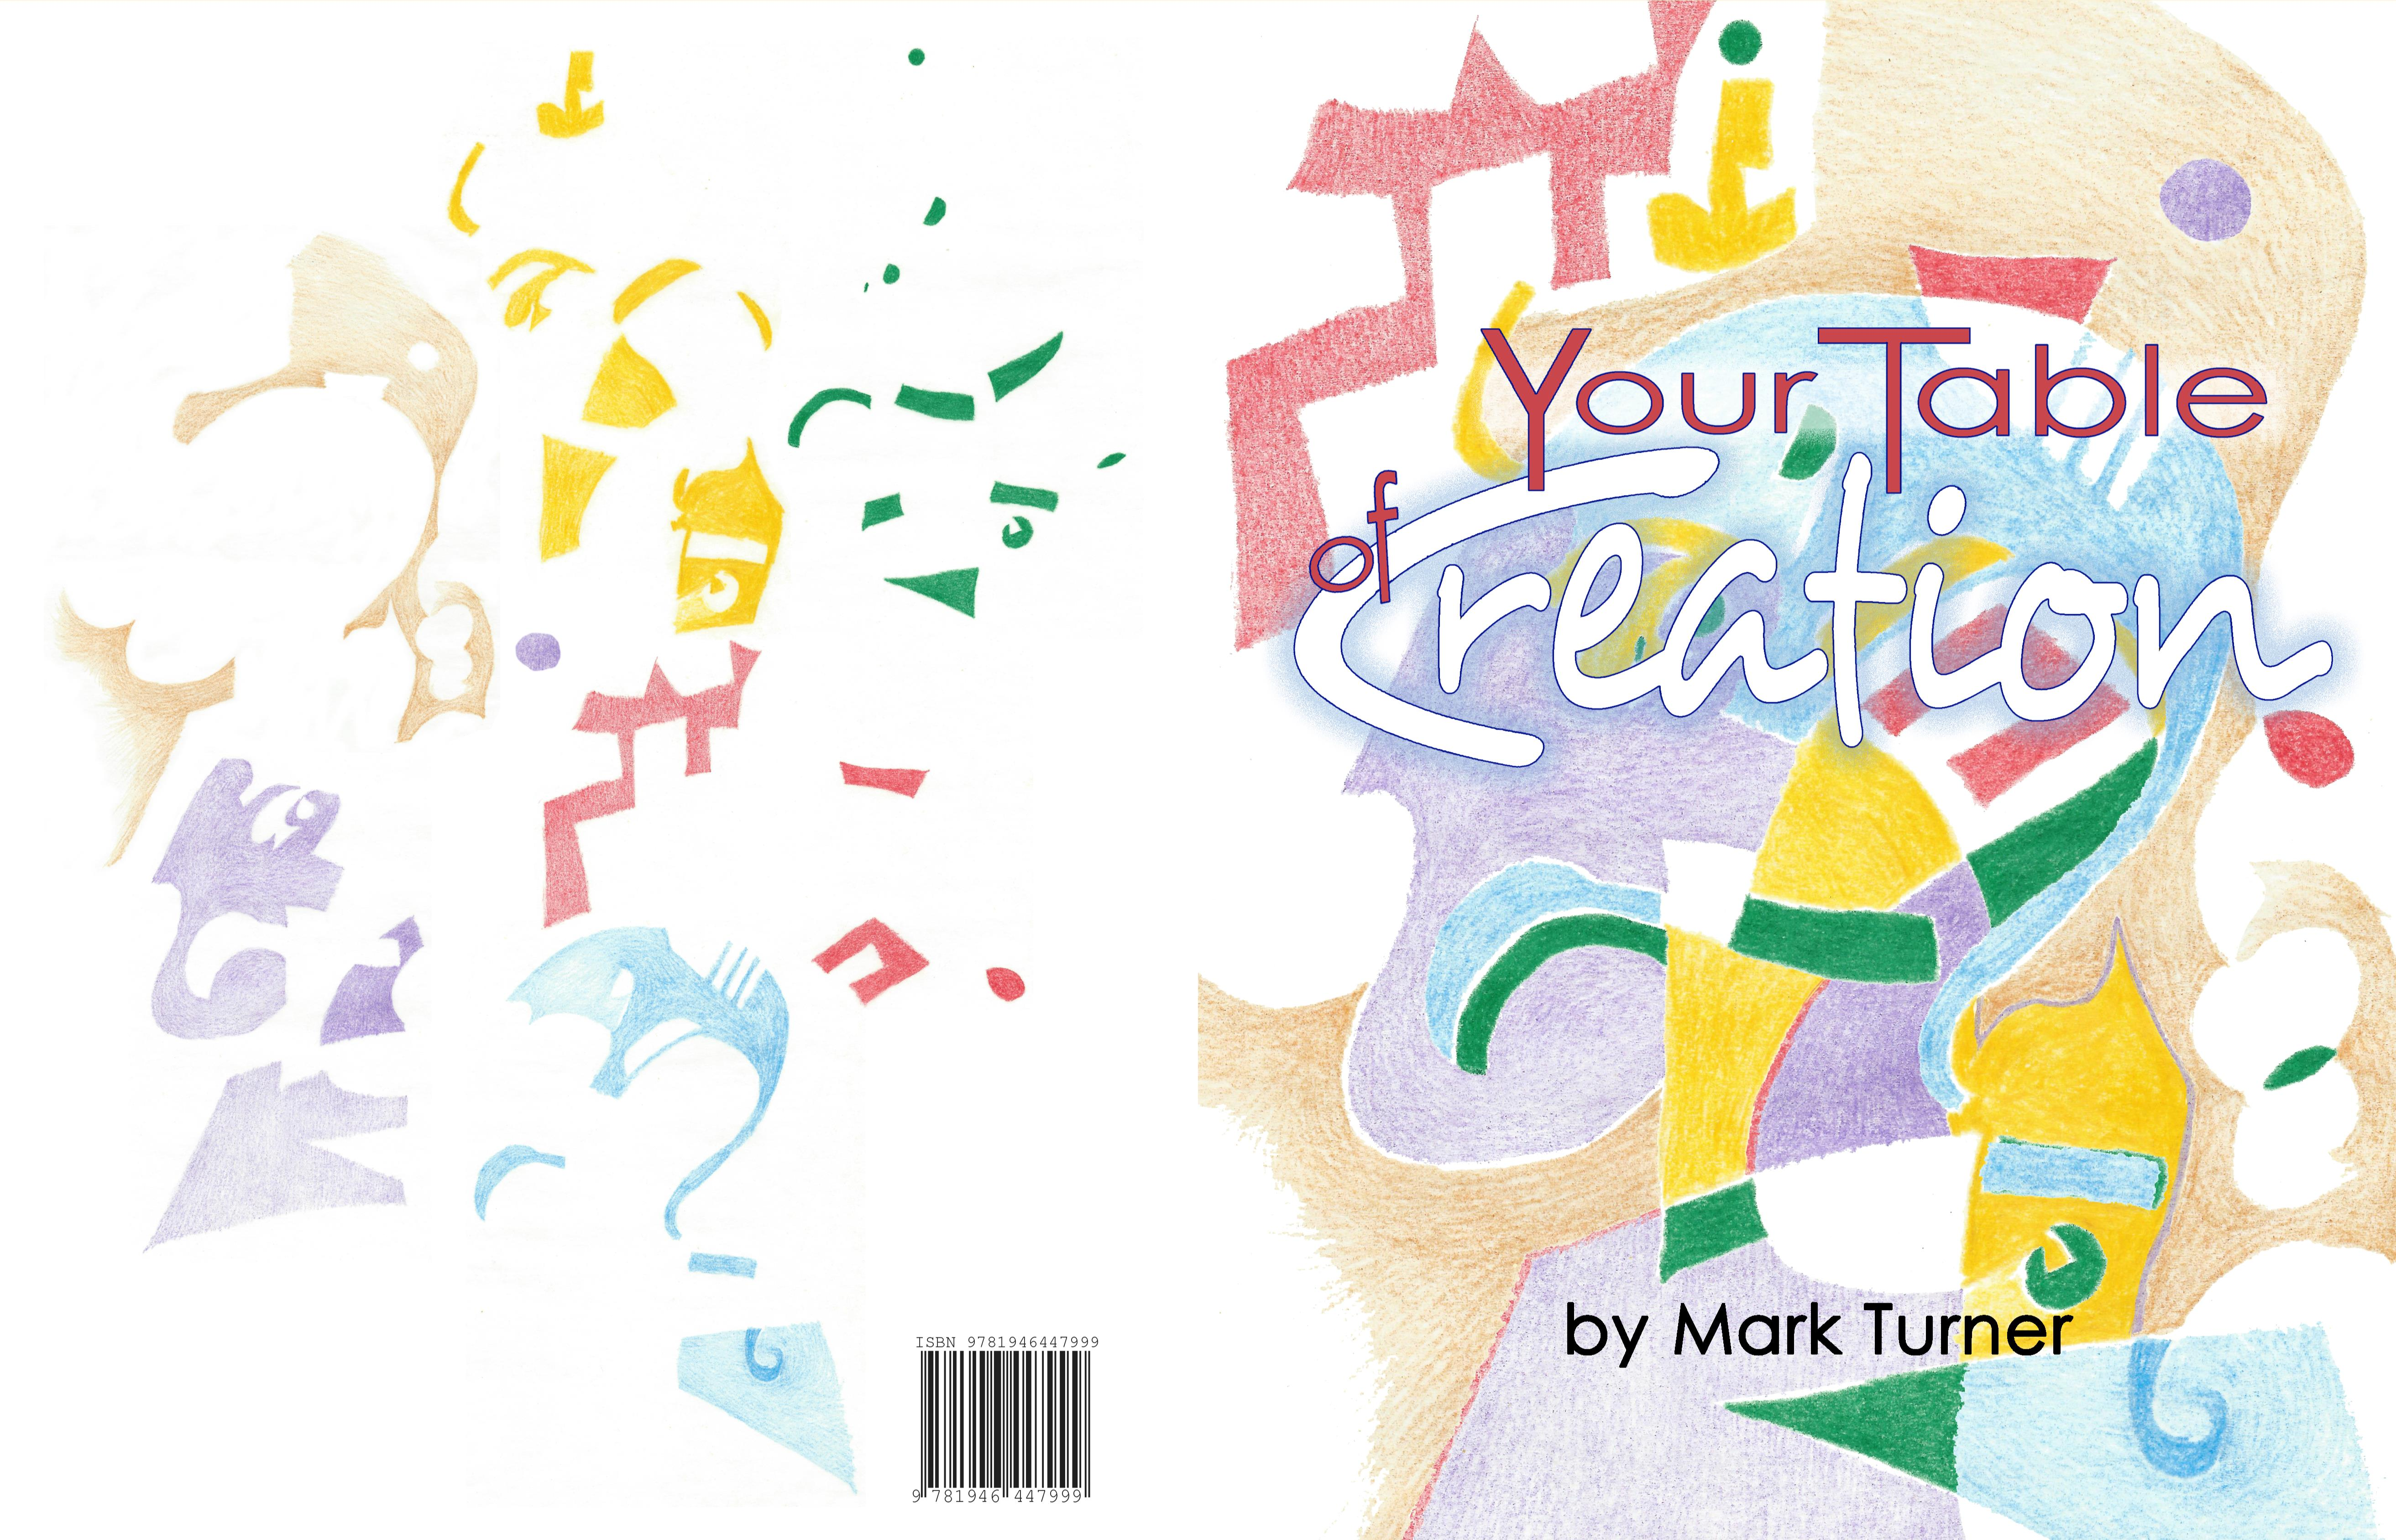 Your Table of Creation cover image